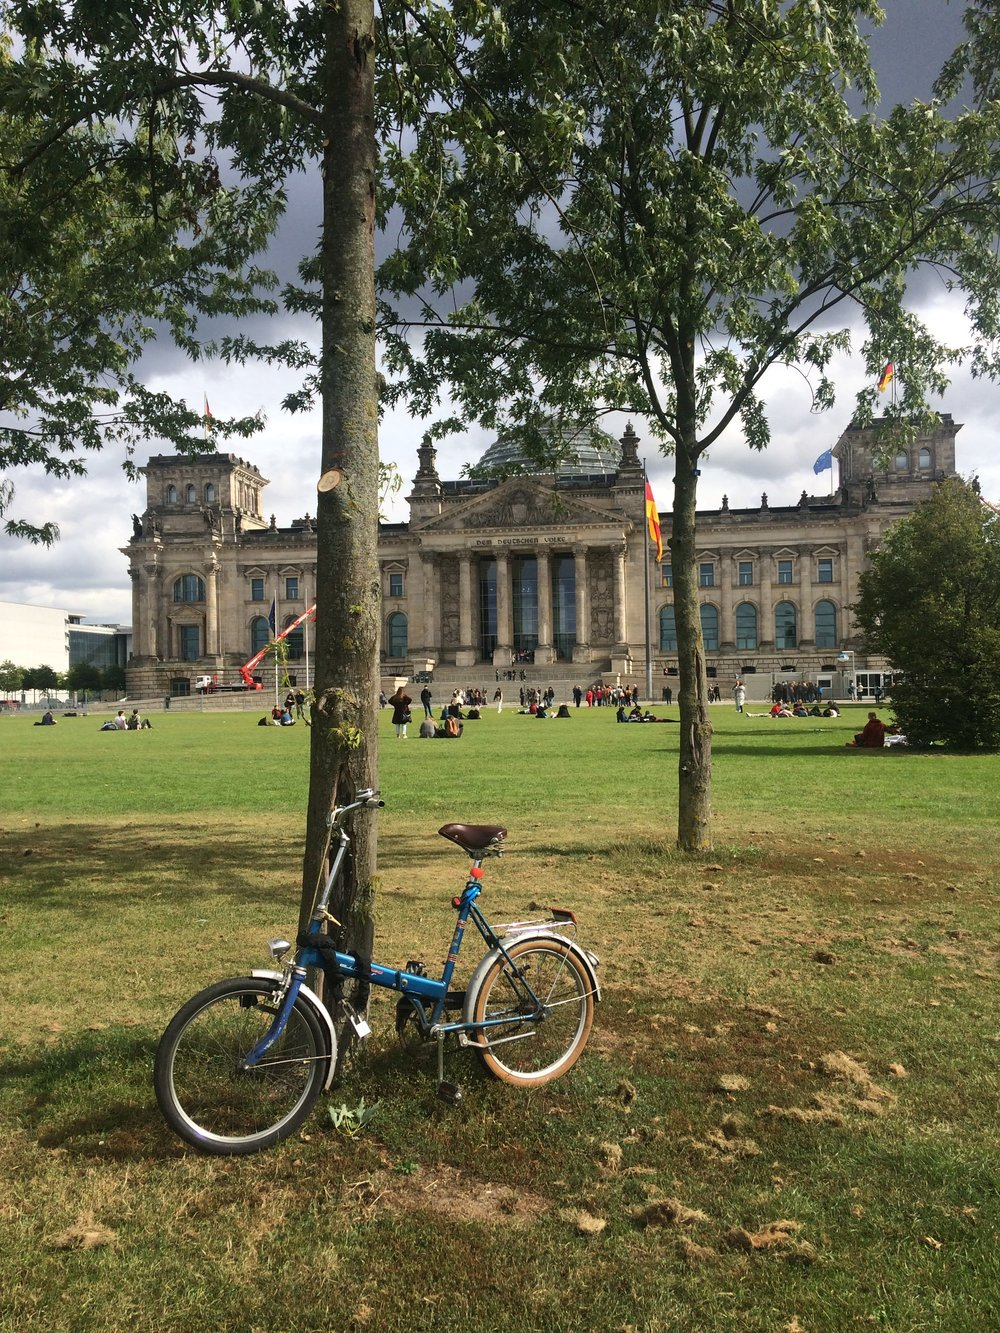 Exploring Berlin by bicycle - parked in front of the Reichstagsgebäude